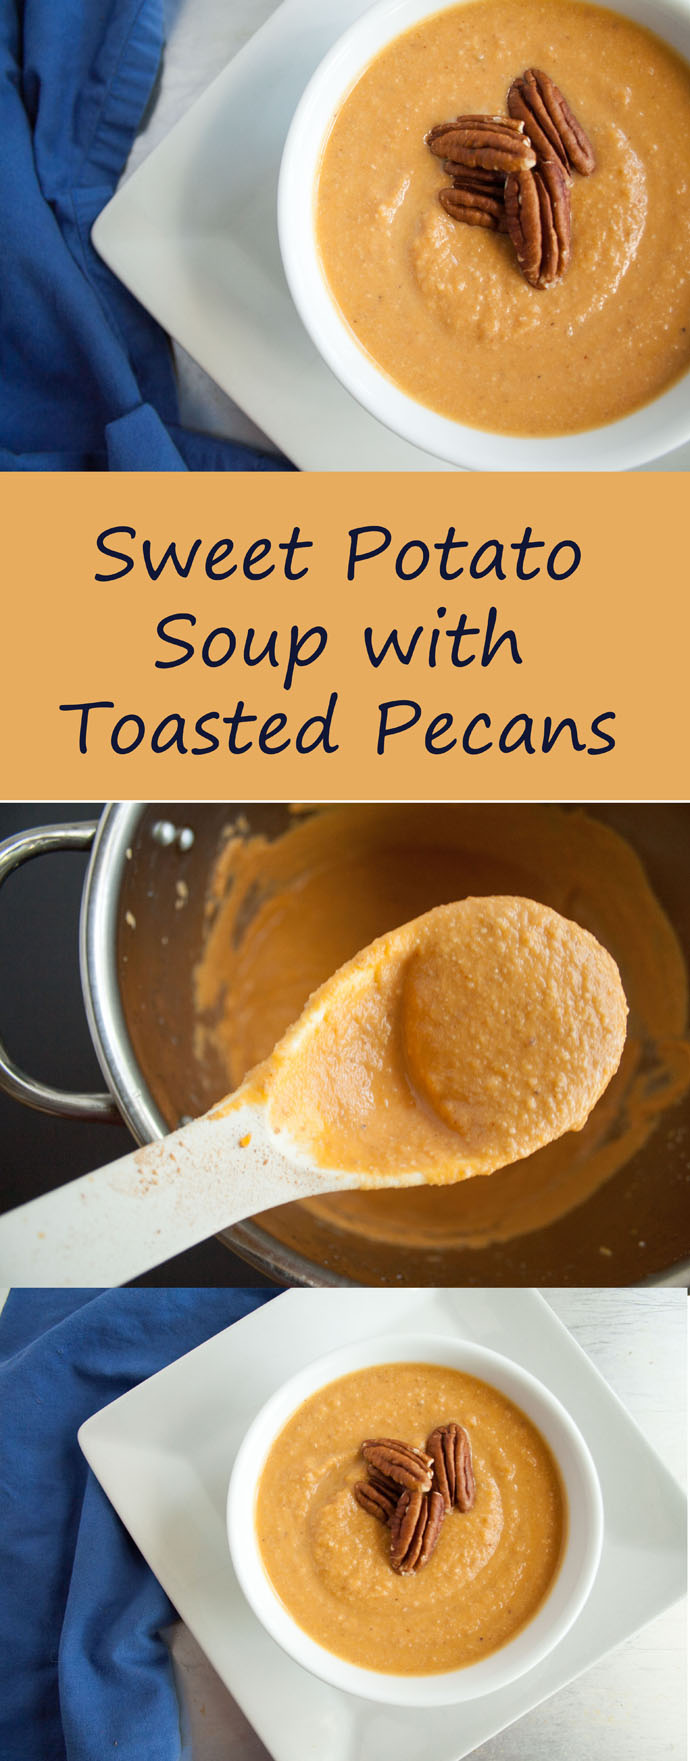 Sweet Potato Soup with Toasted Pecans collage photo with text.